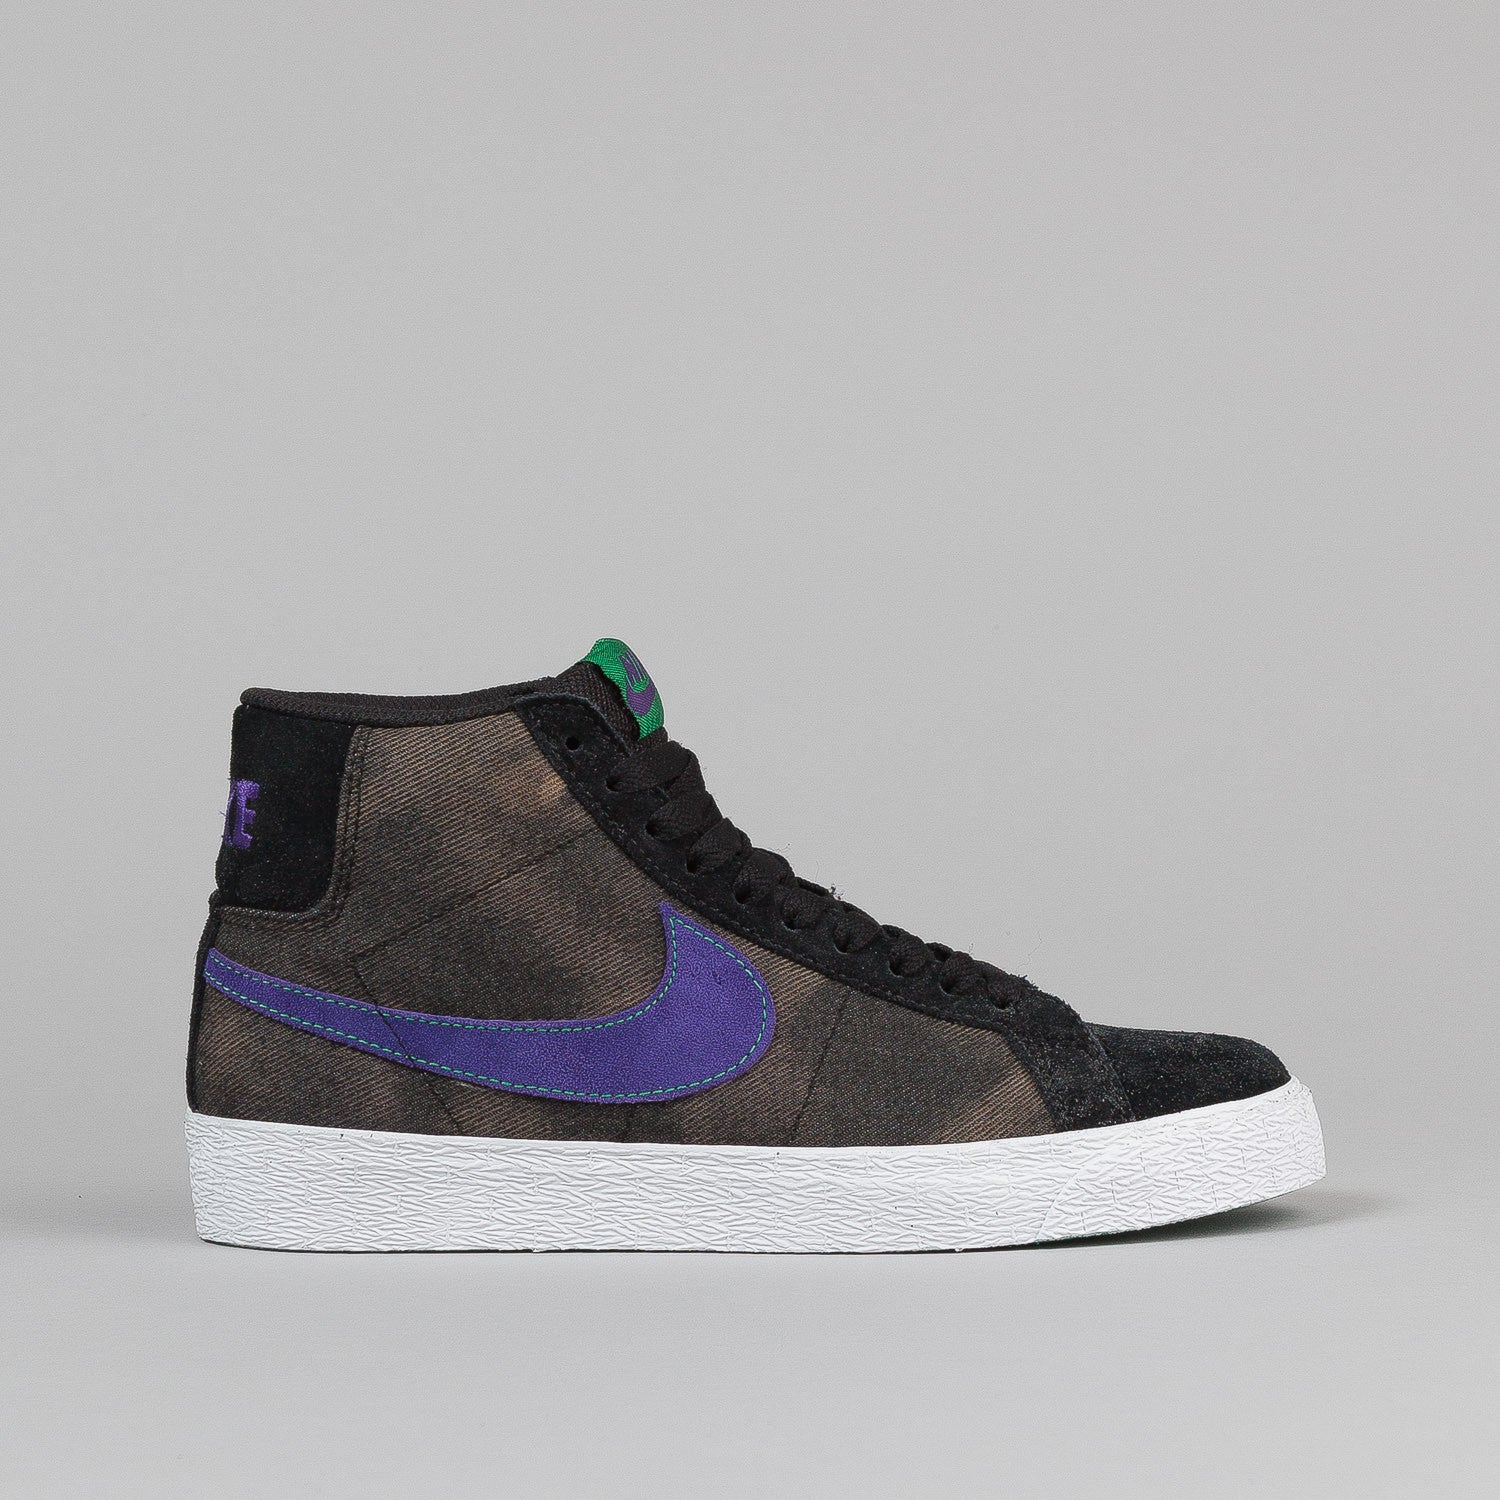 Nike SB Blazer Shoes